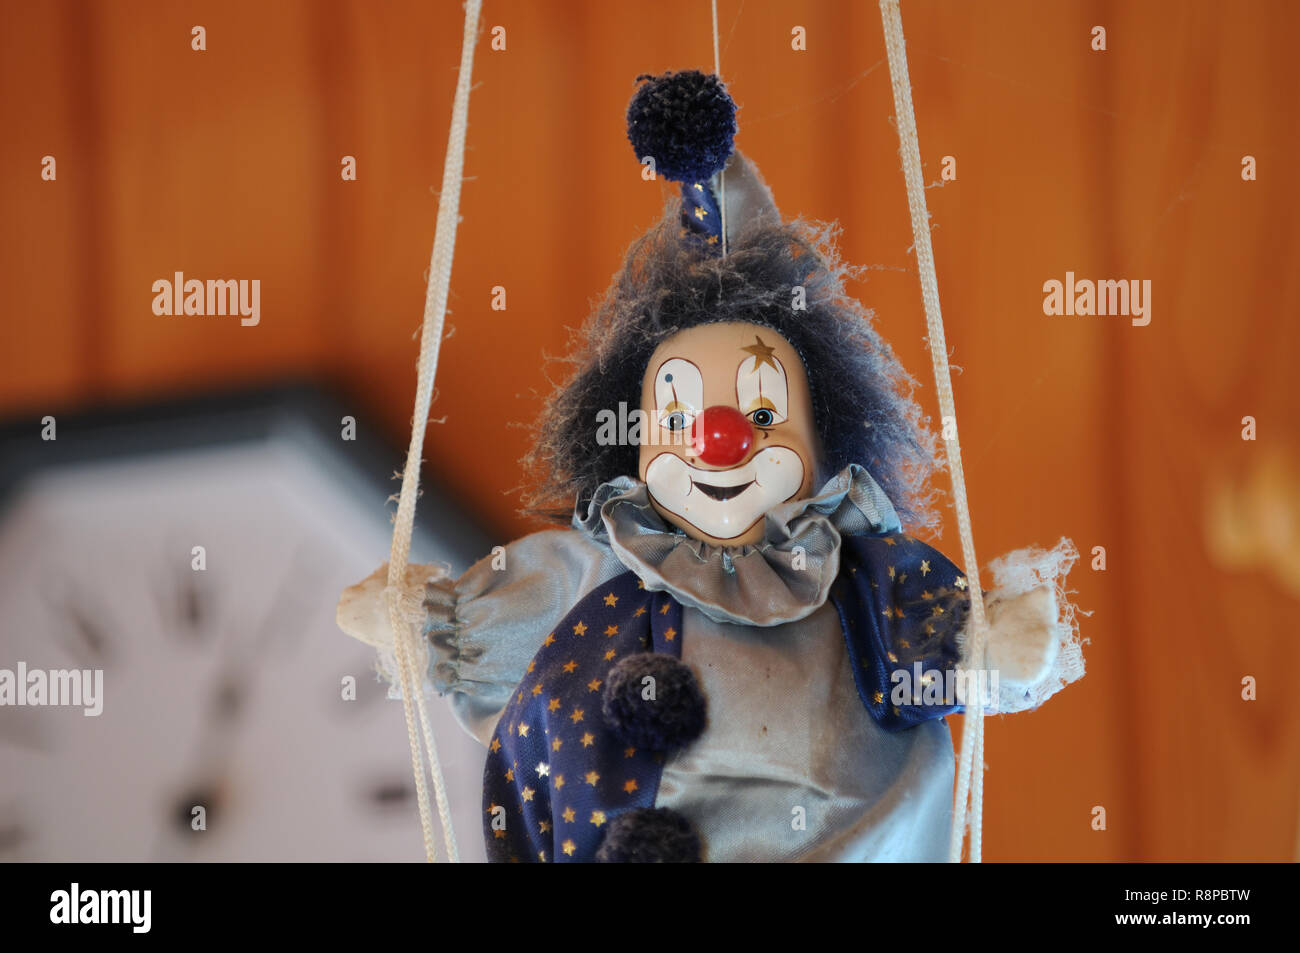 Knick-knack clown doll and clock in the background. - Stock Image